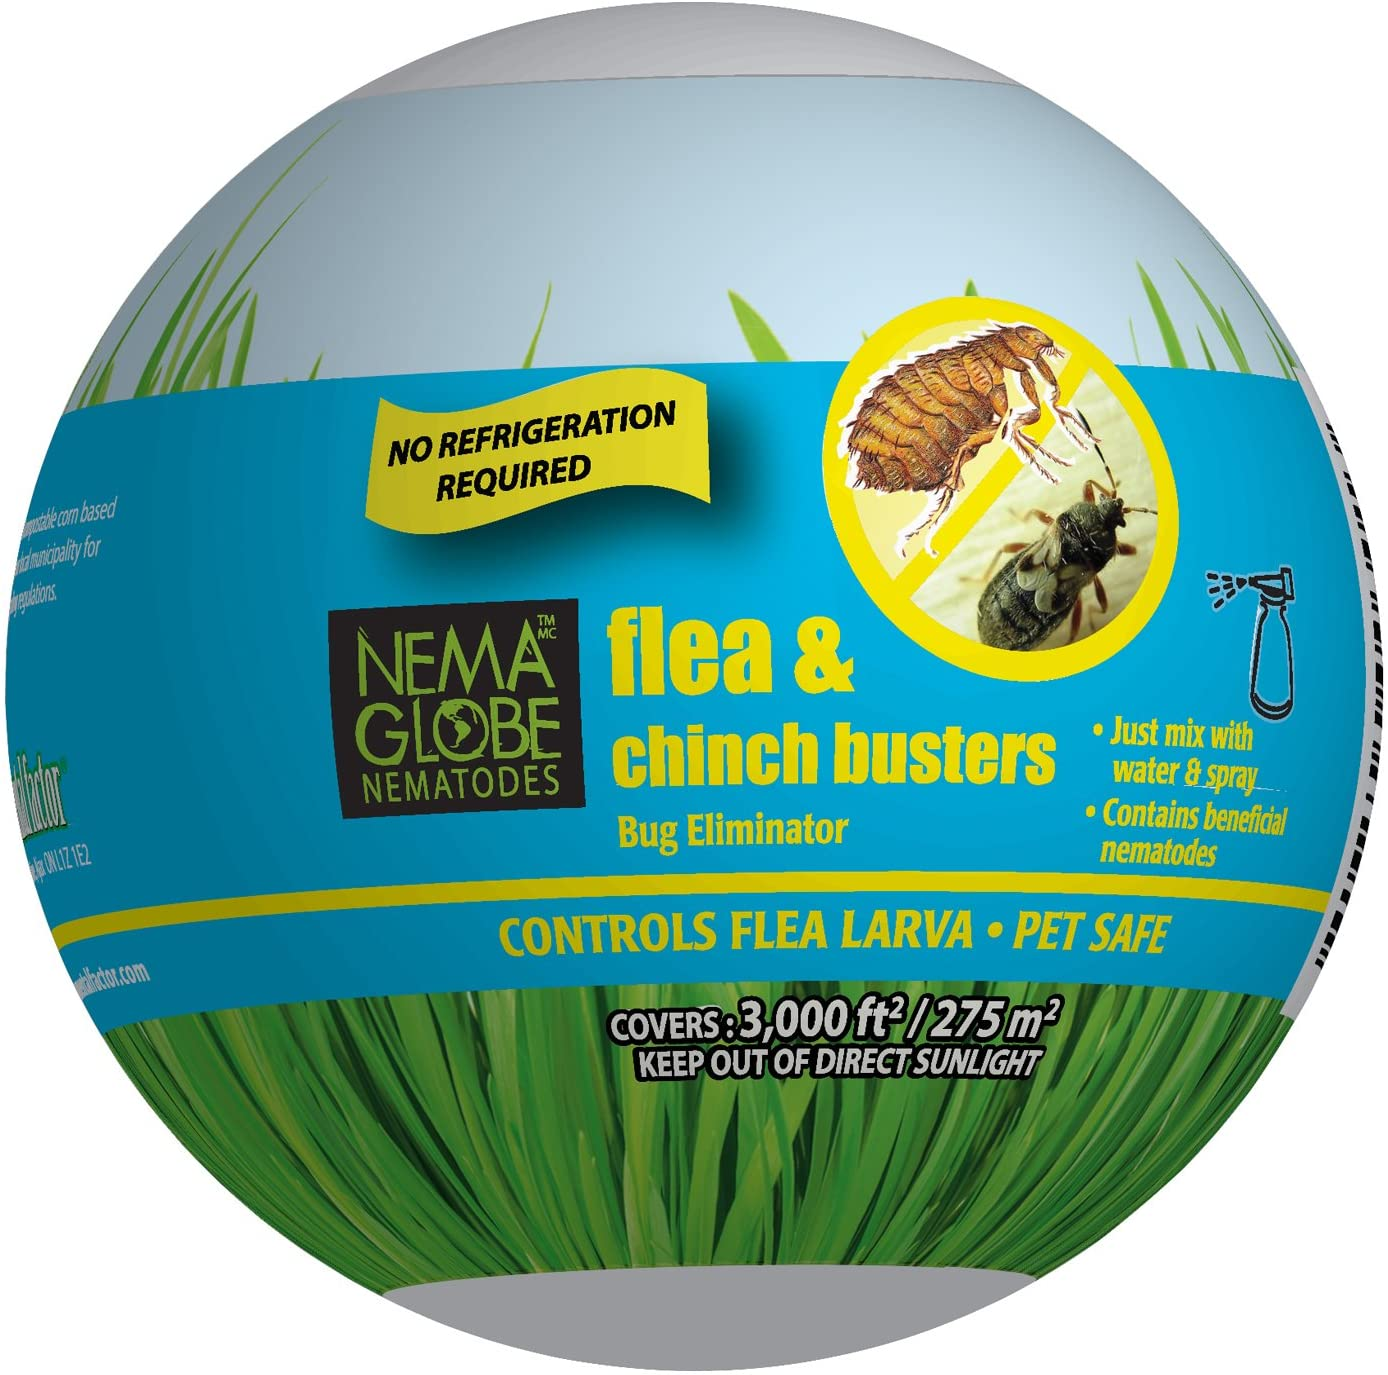 Nema Globe 25 Million Beneficial Nematodes (S.carpocapsae) Flea, Fly and Chinch Buster for Pest Control - New No Refrigeration Required Formula